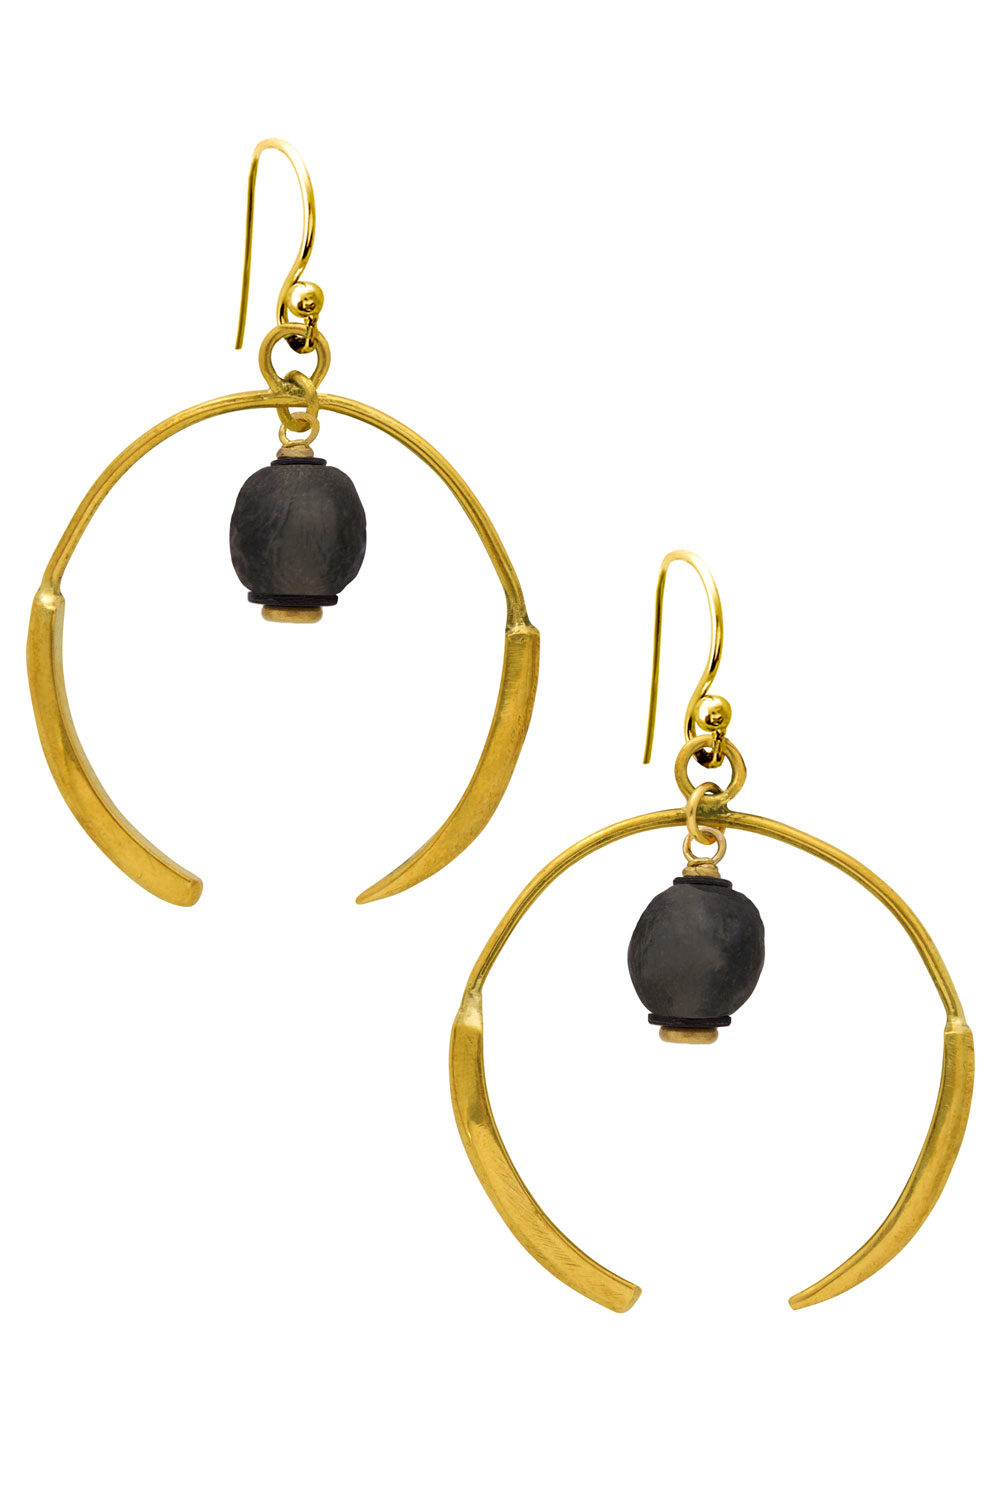 Nyeusi Black Aza Earrings by SHIKHAZURI